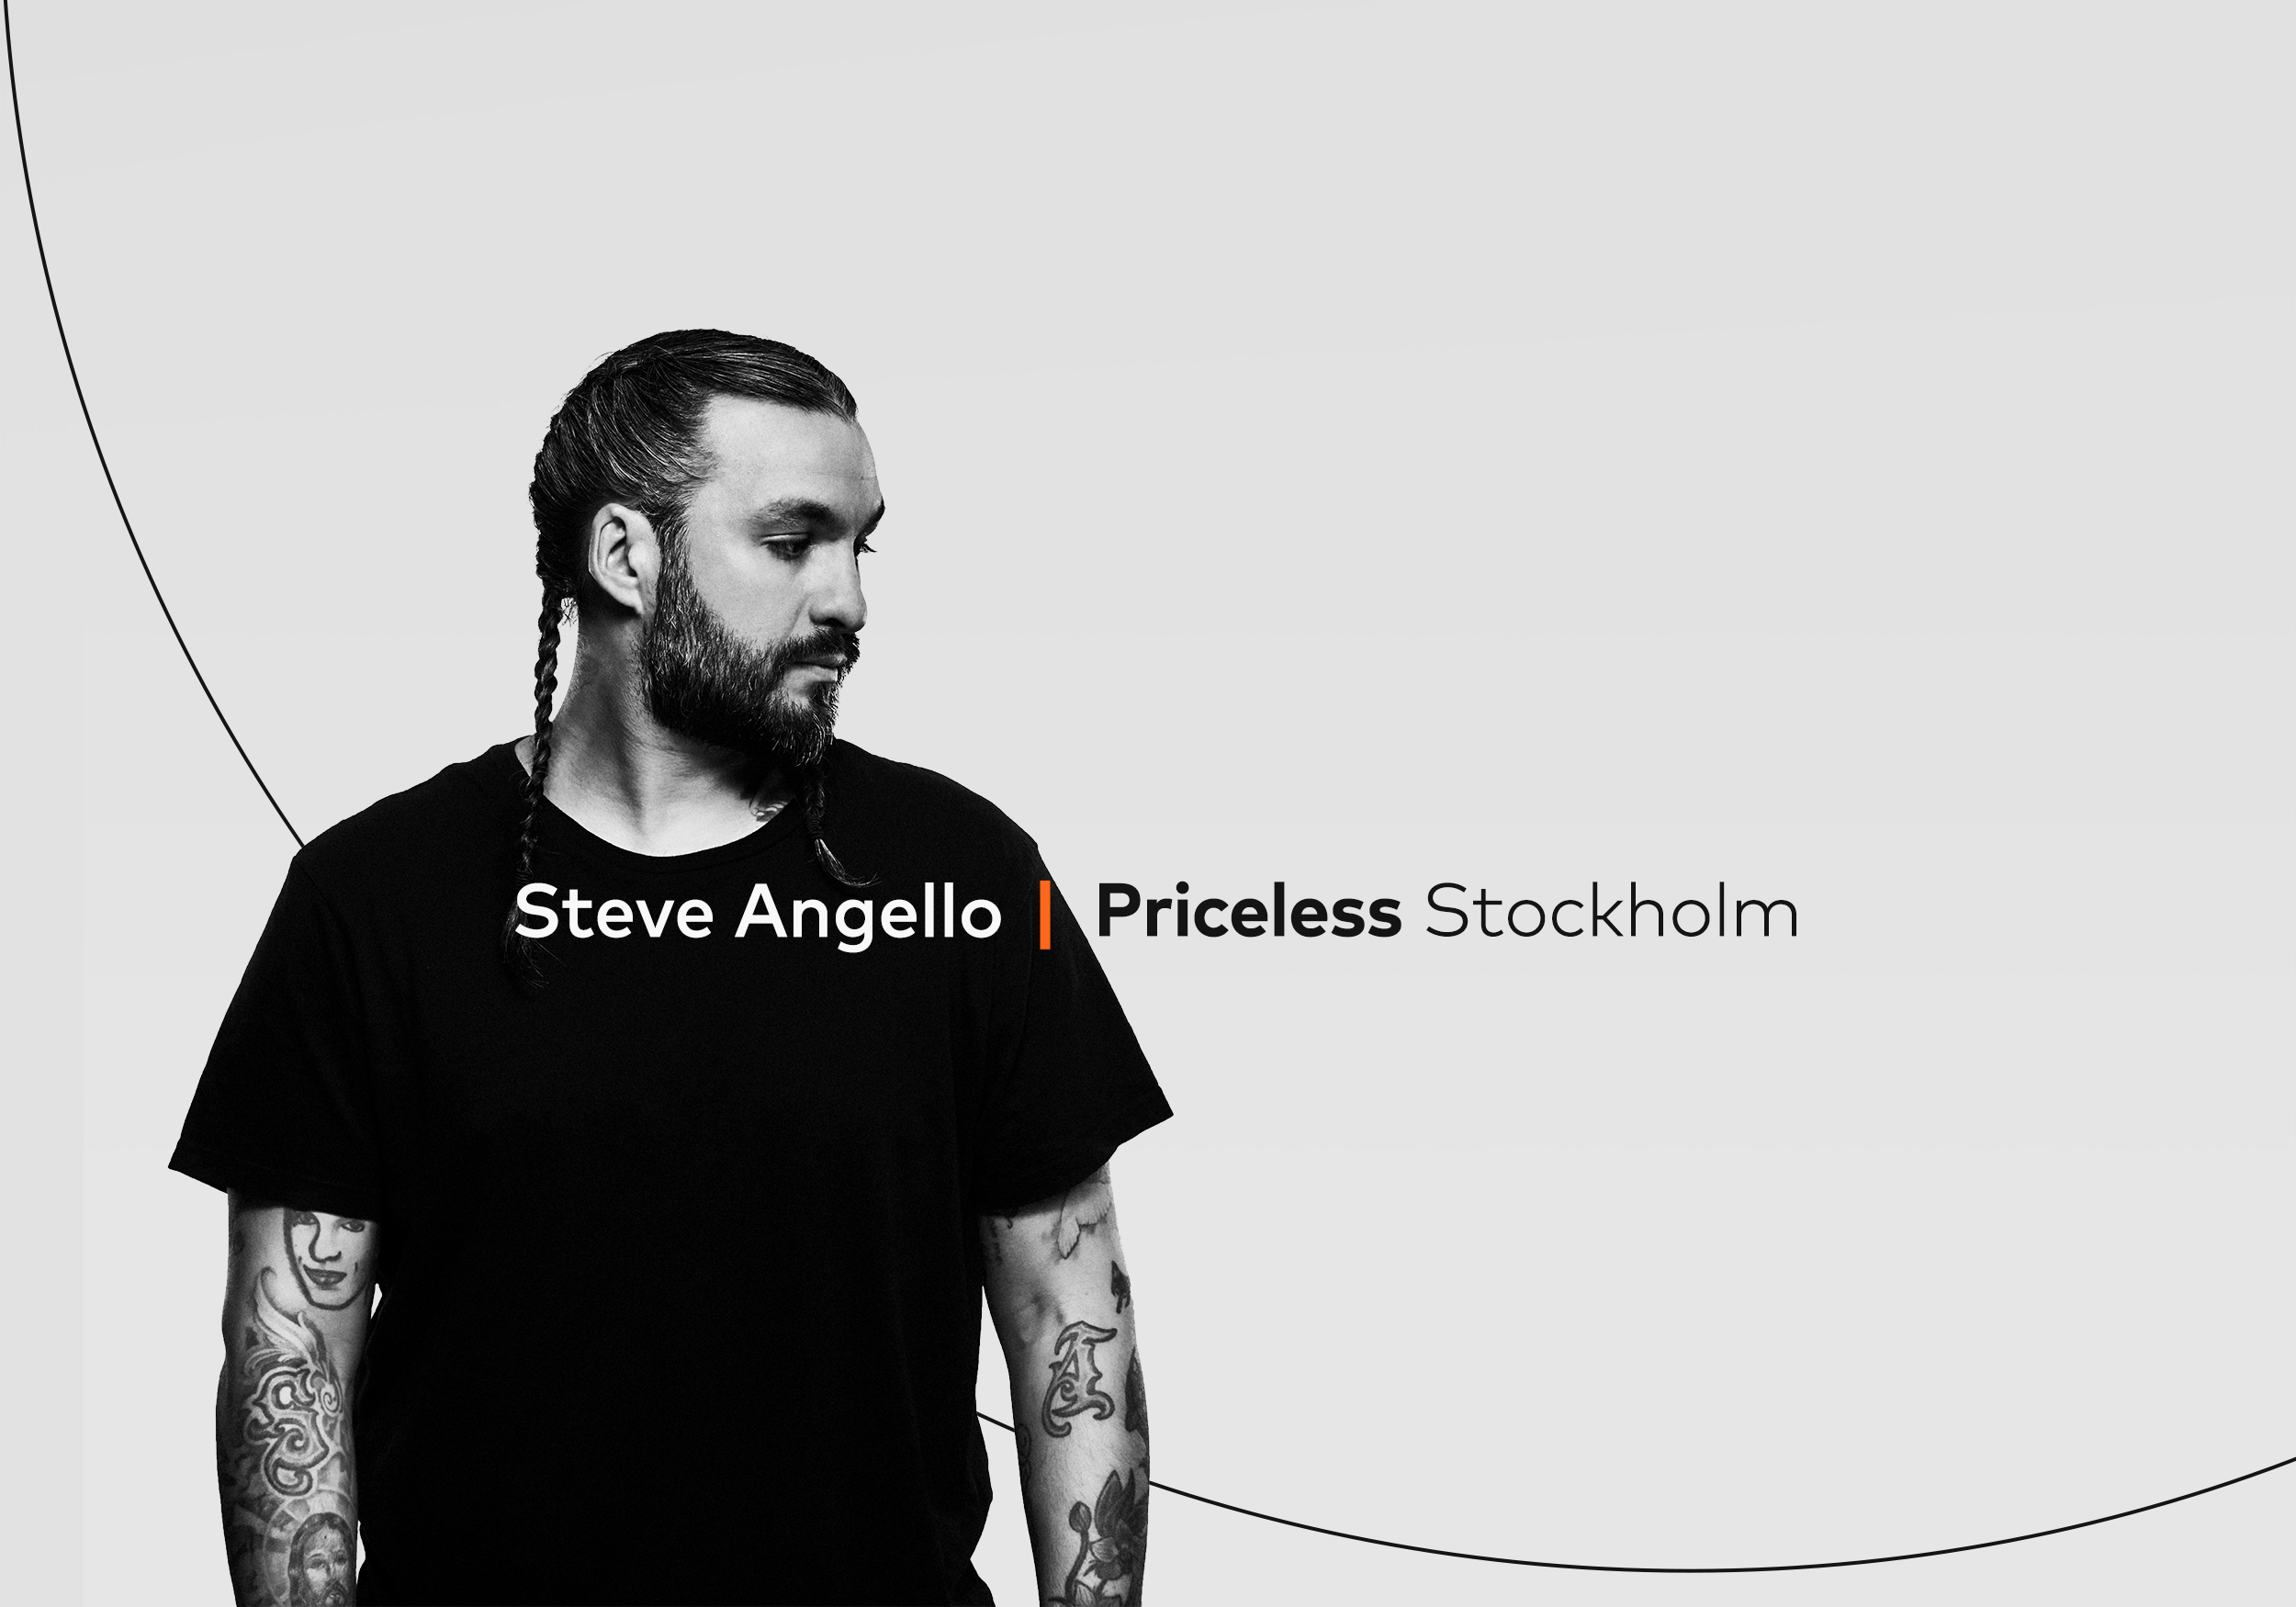 Steve Angello image